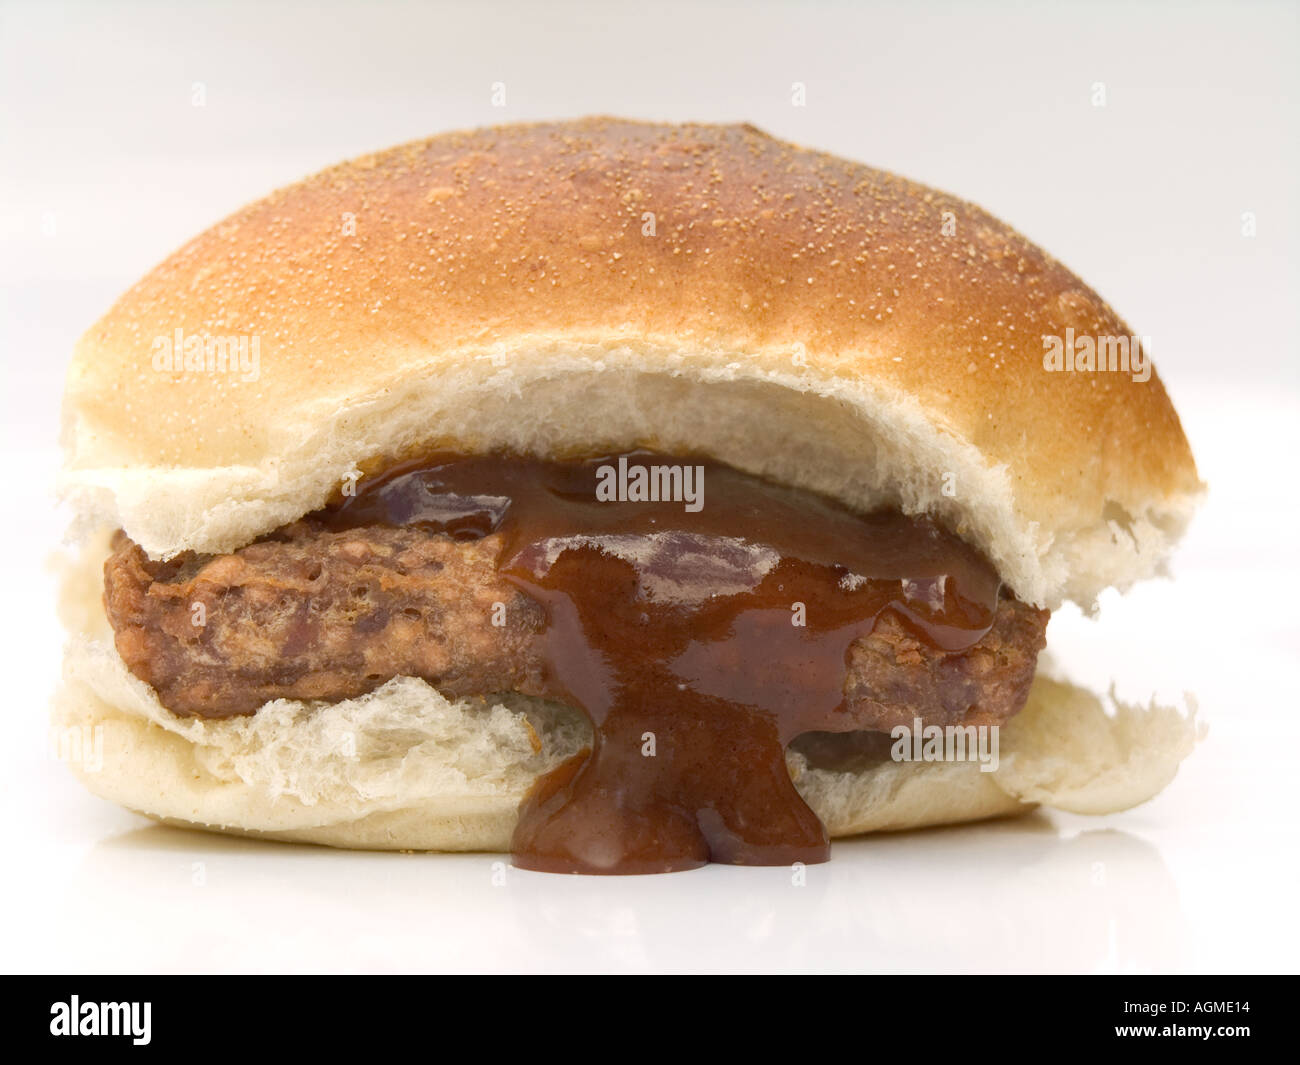 a-roll-with-lorne-sausage-and-brown-sauc